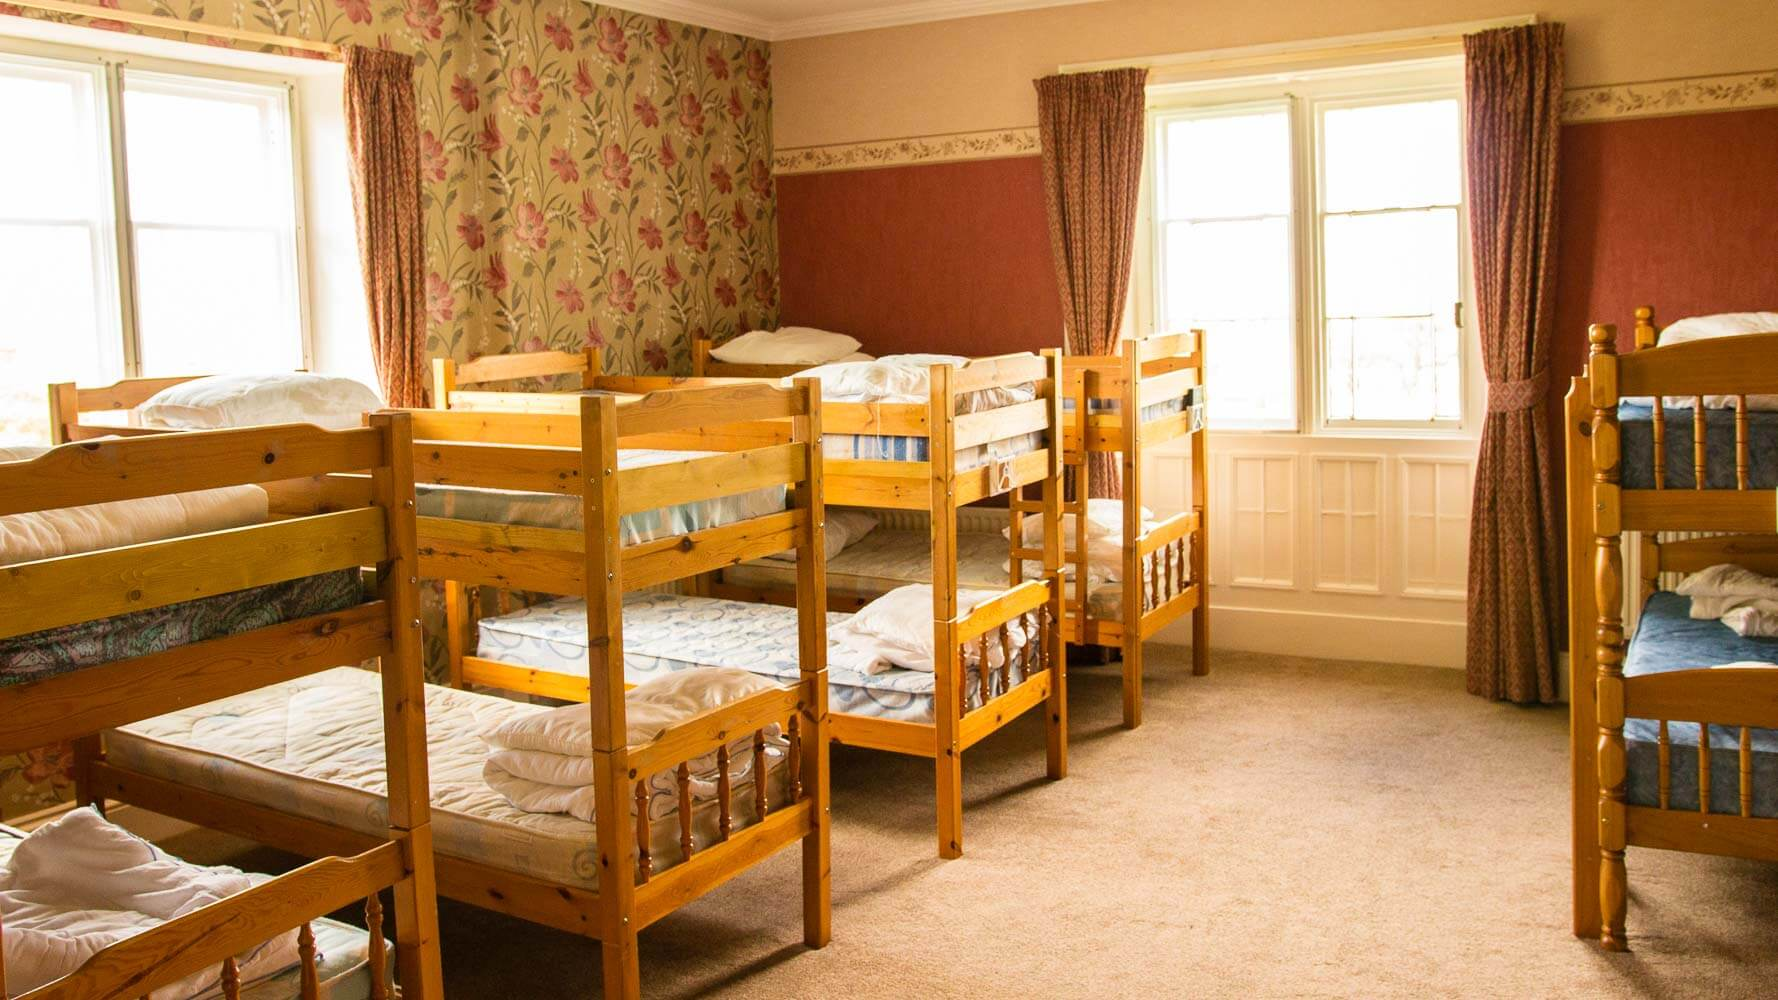 Dormitory style bedroom.